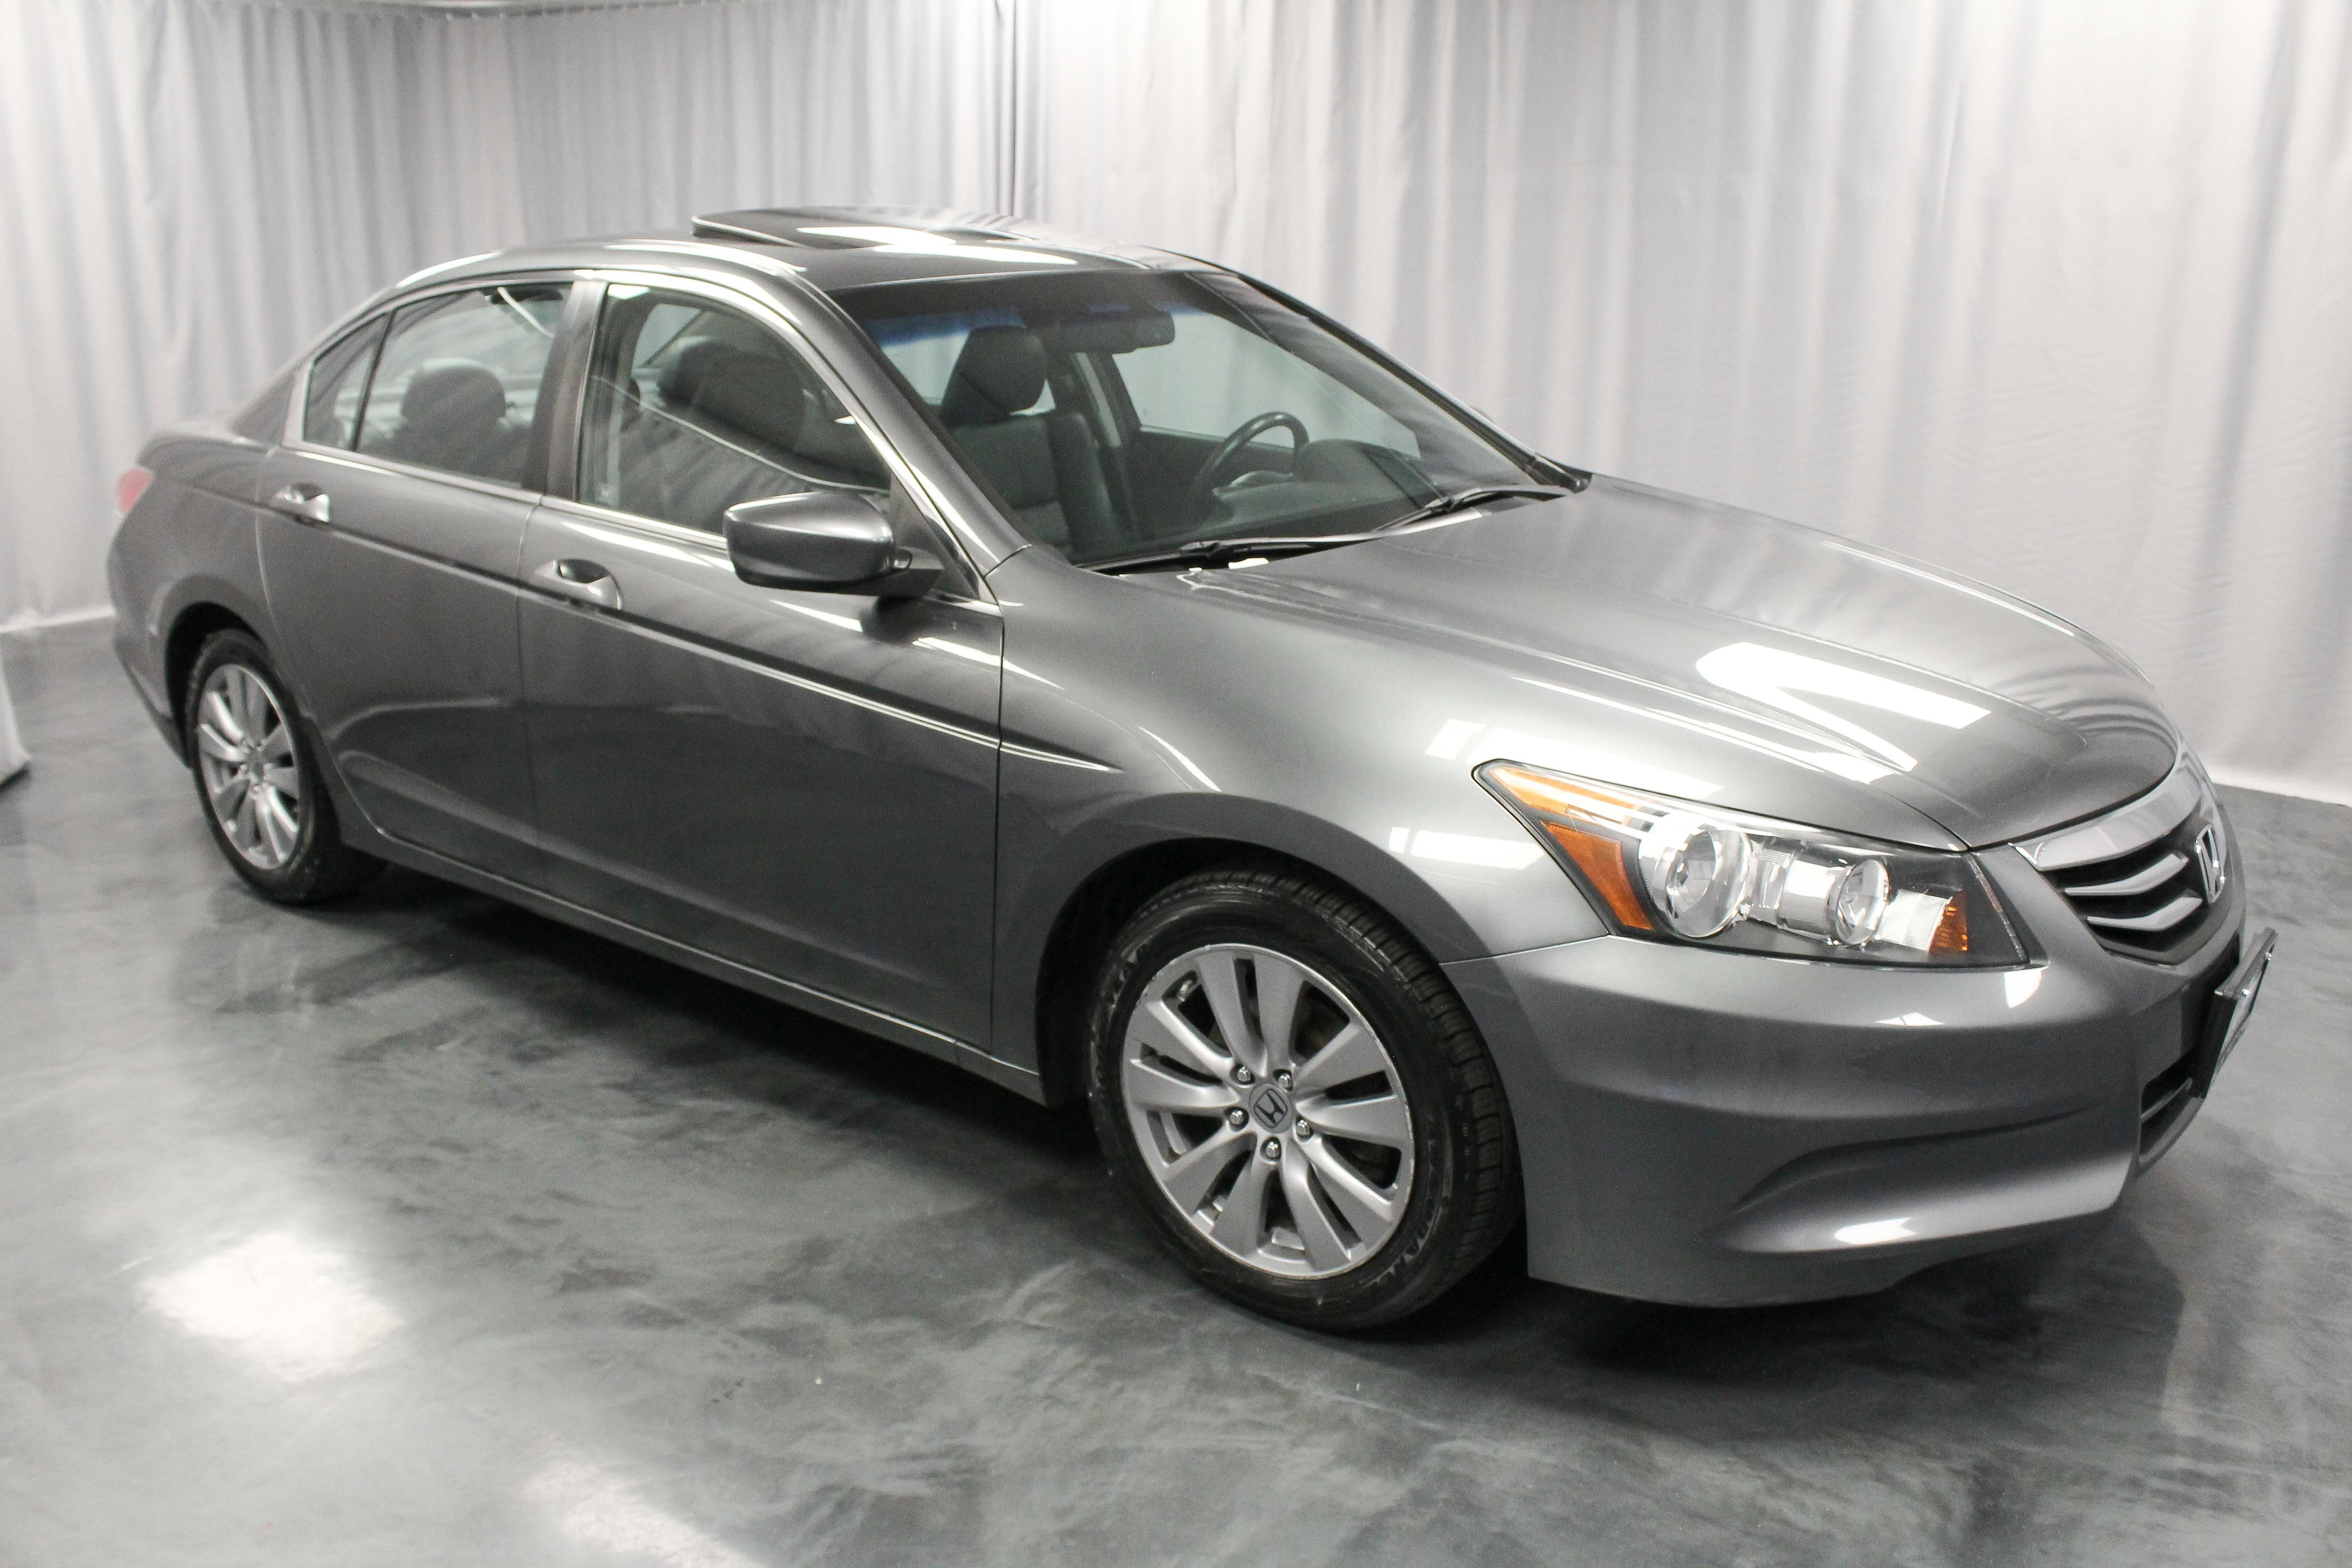 2012 Honda Accord EX-L Sedan